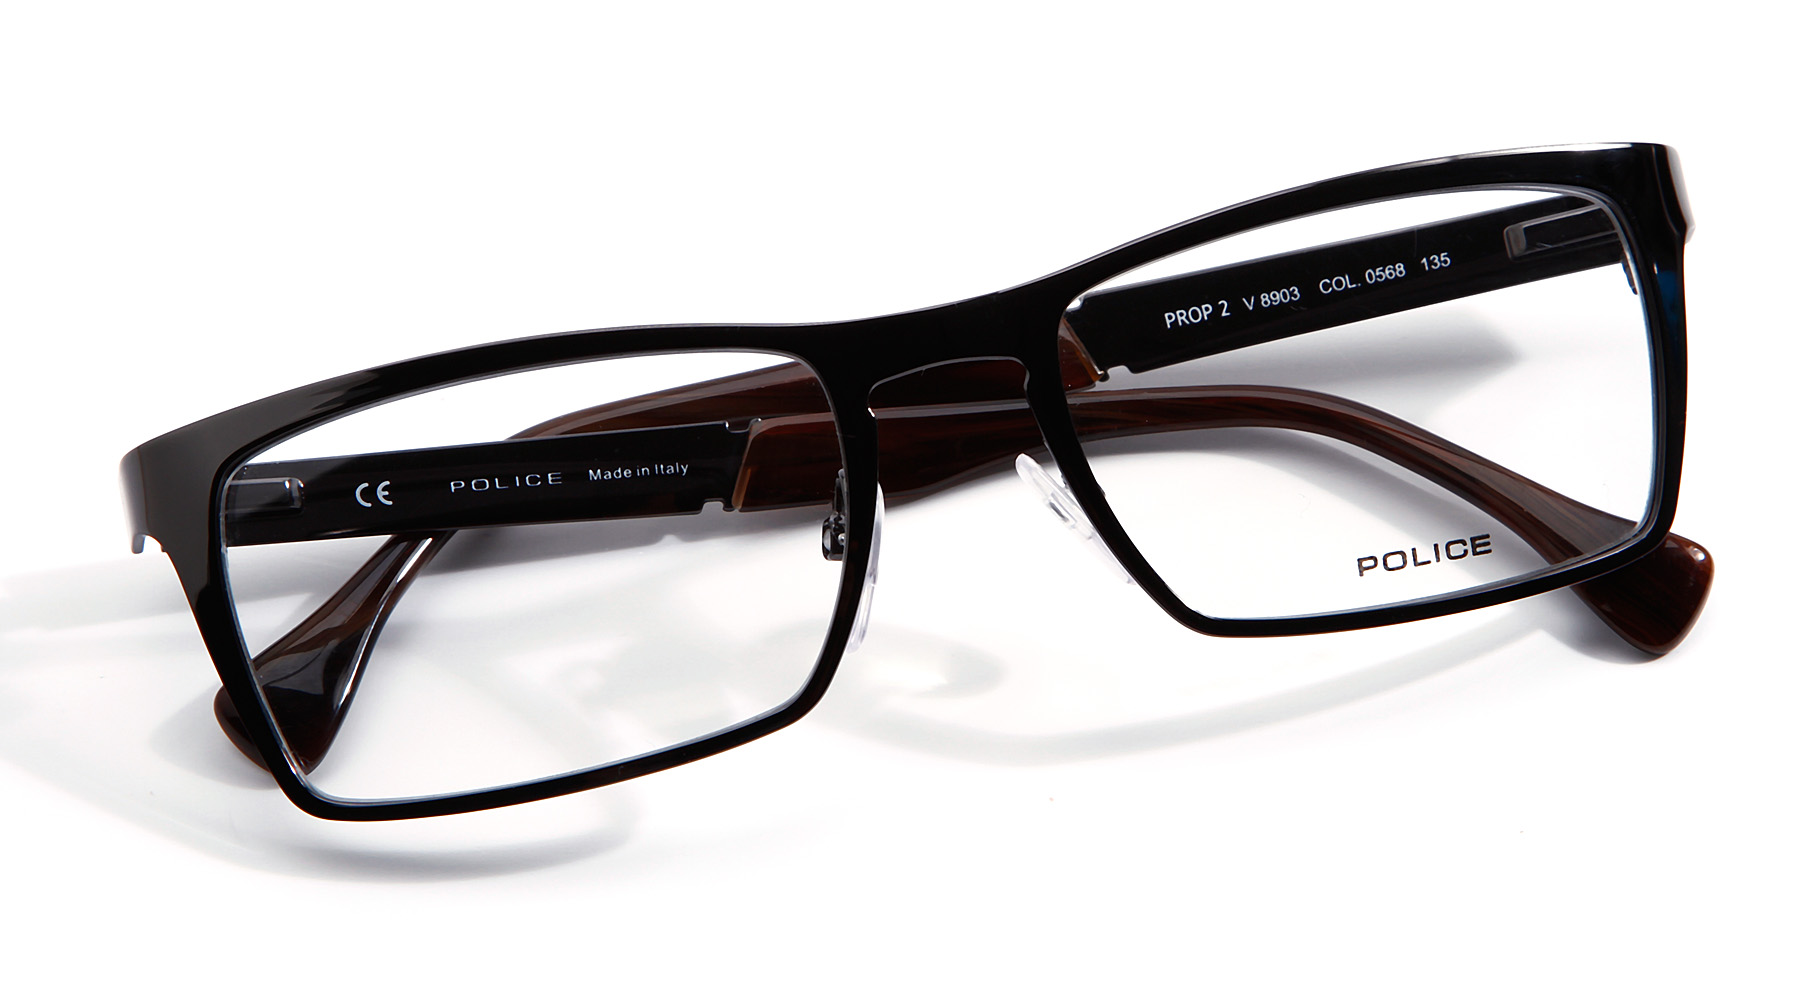 Mens Black Frame Reading Glasses : Police Retro Mens Prop 2-V-8903 Glasses Reading Black ...